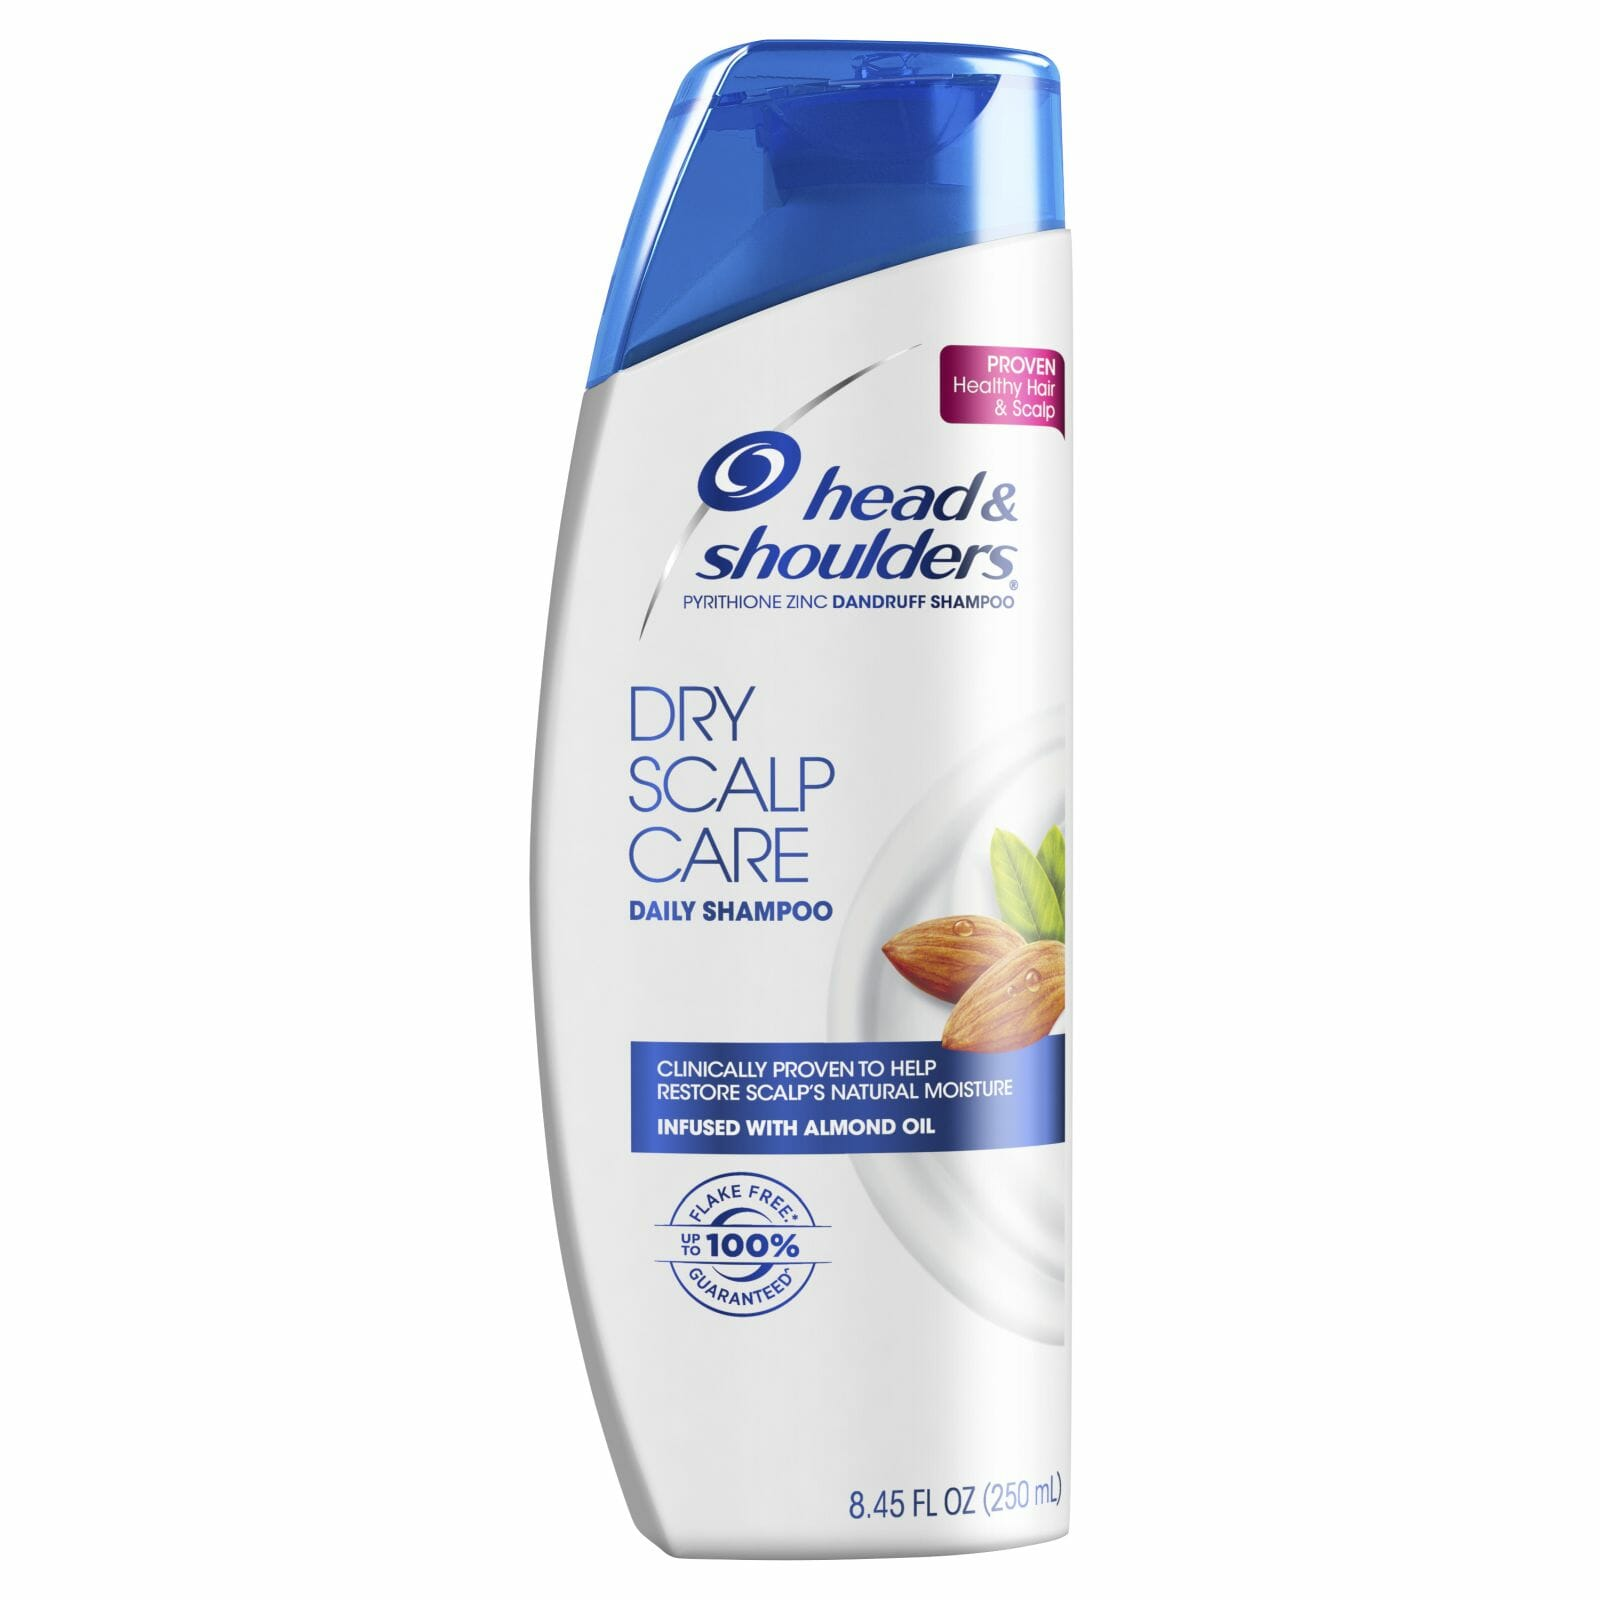 Head & Shoulder Anti Dandruff Dry Scalp Care With Almond Oil Shampoo - Best Shampoo For Dry Hair in Pakistan